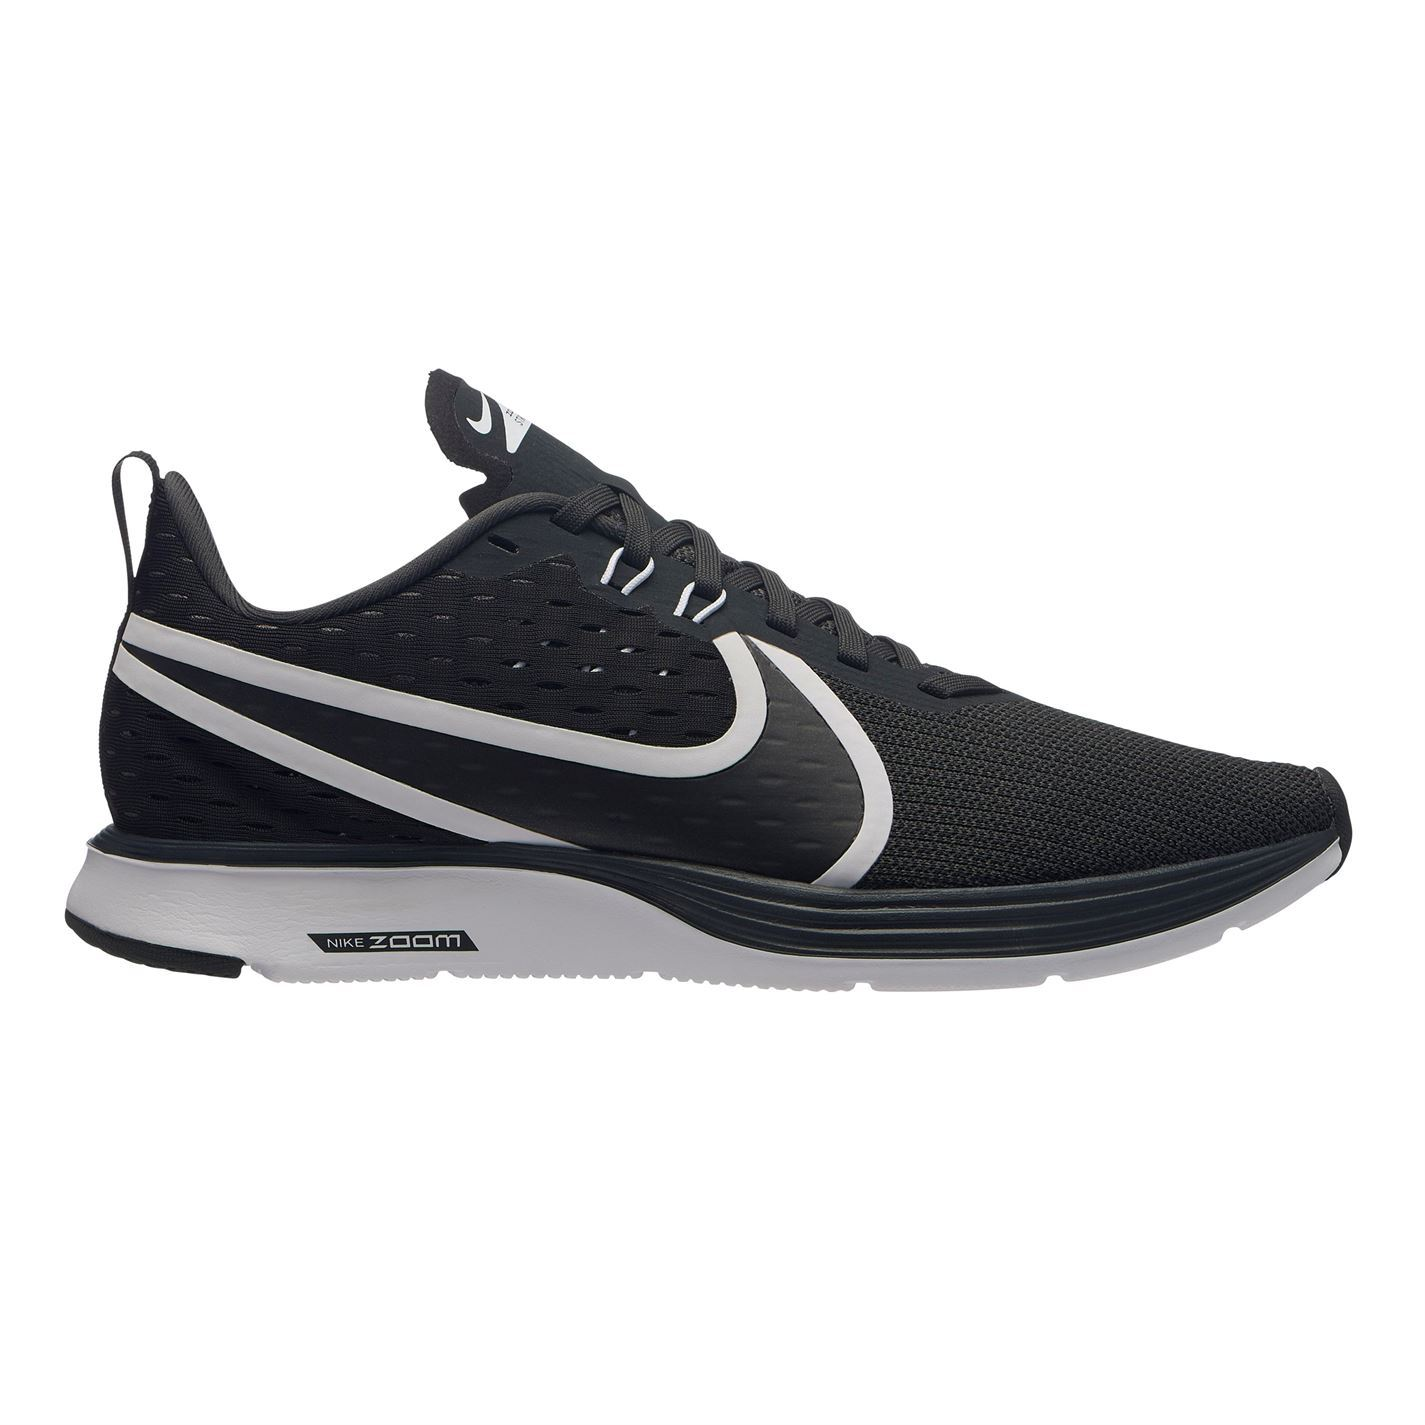 Details about Nike Zoom Strike 2 Running Shoes Womens BlackWhite Fitness Trainers Sneakers